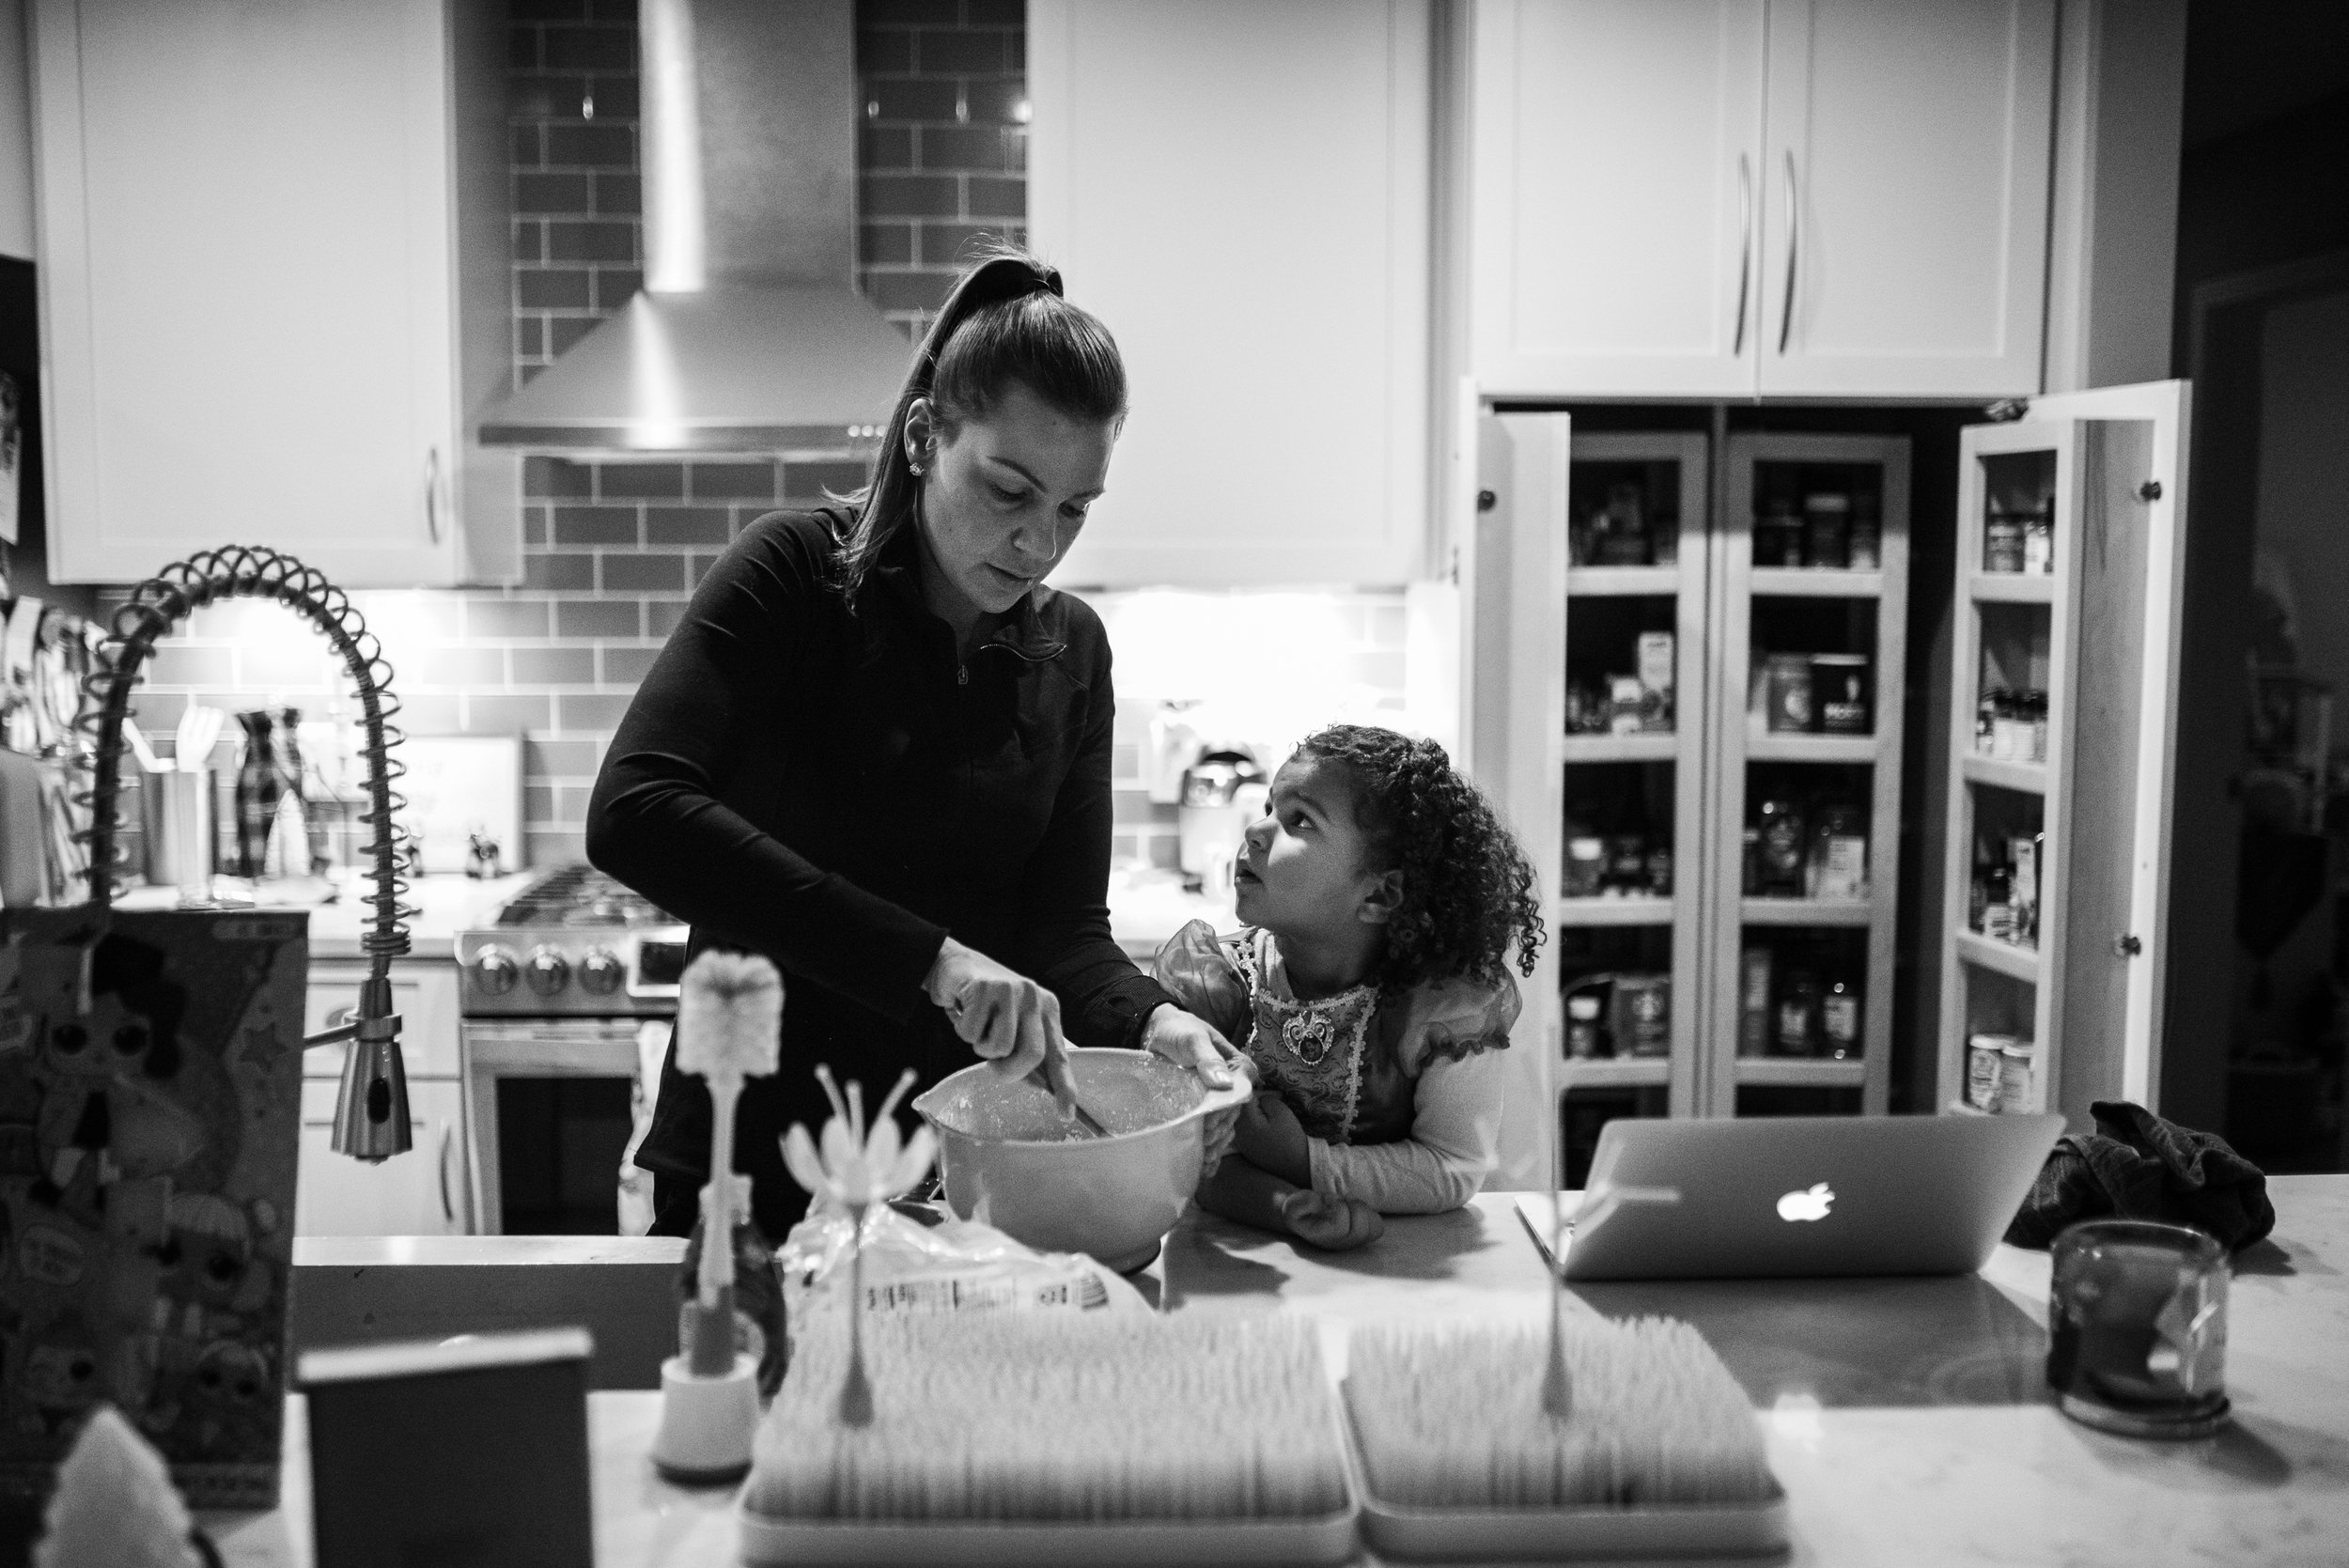 Mom and daughter baking cookies in kitchen